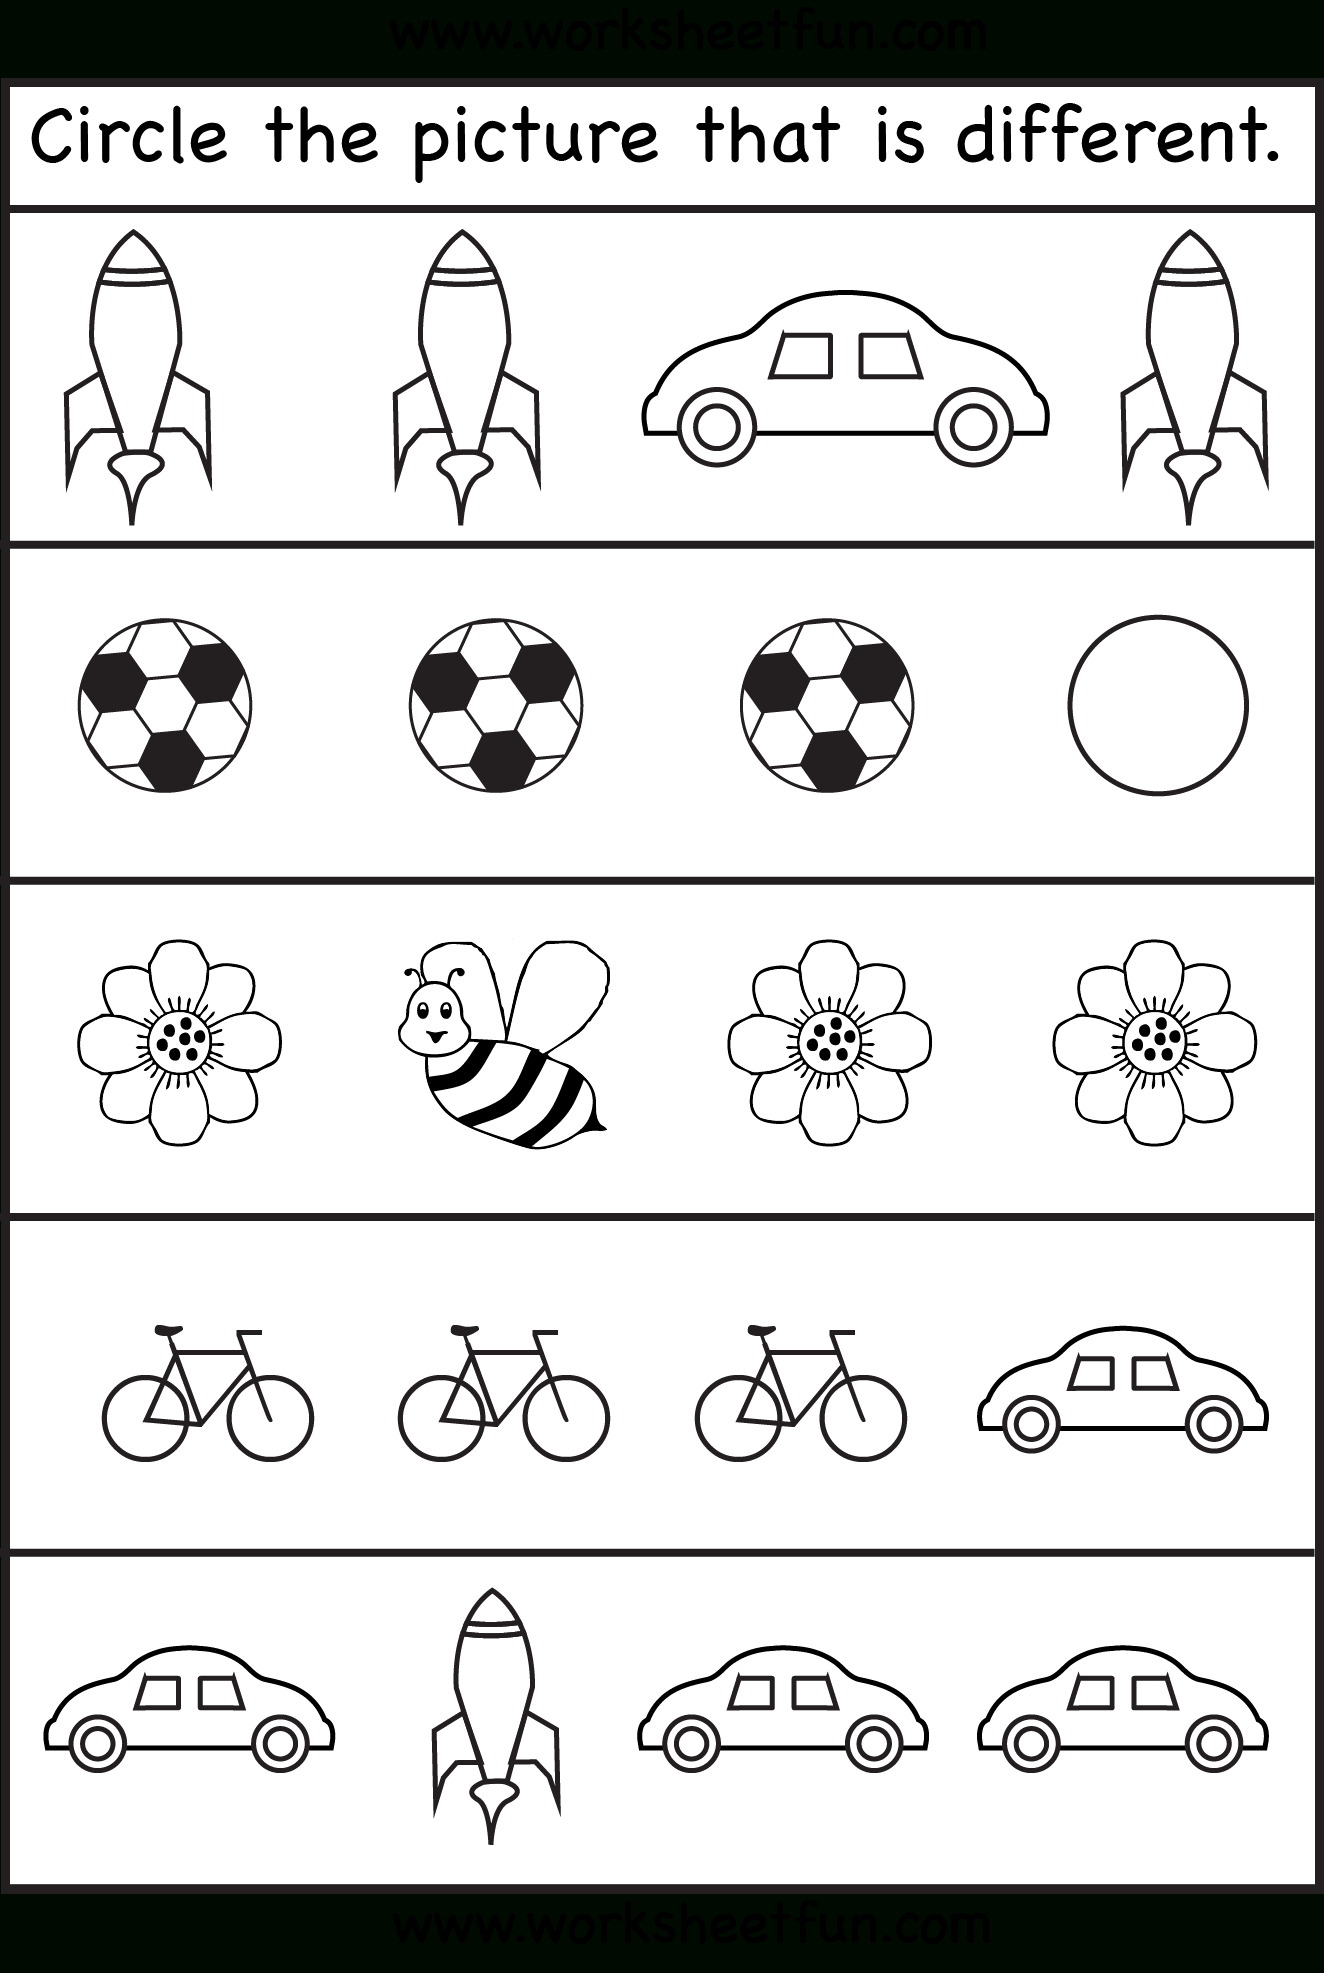 Circle The Picture That Is Different - 4 Worksheets | Preschool Work - Free Printable Toddler Learning Worksheets